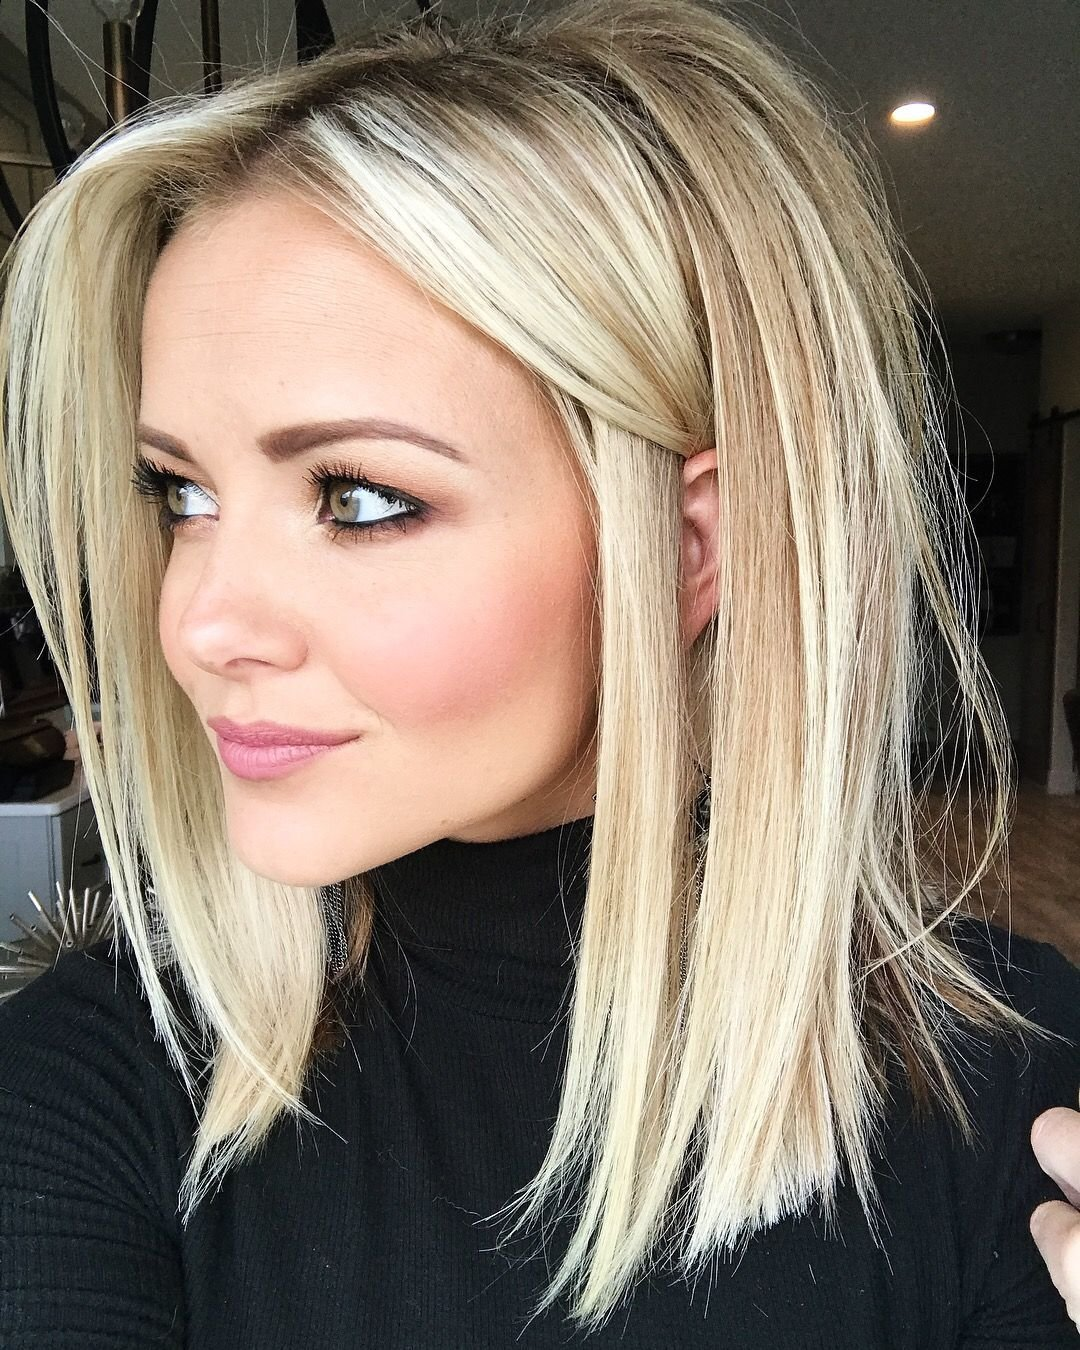 The Best Blonde Lob Haircut Love Her Color And He Length Hair Pictures